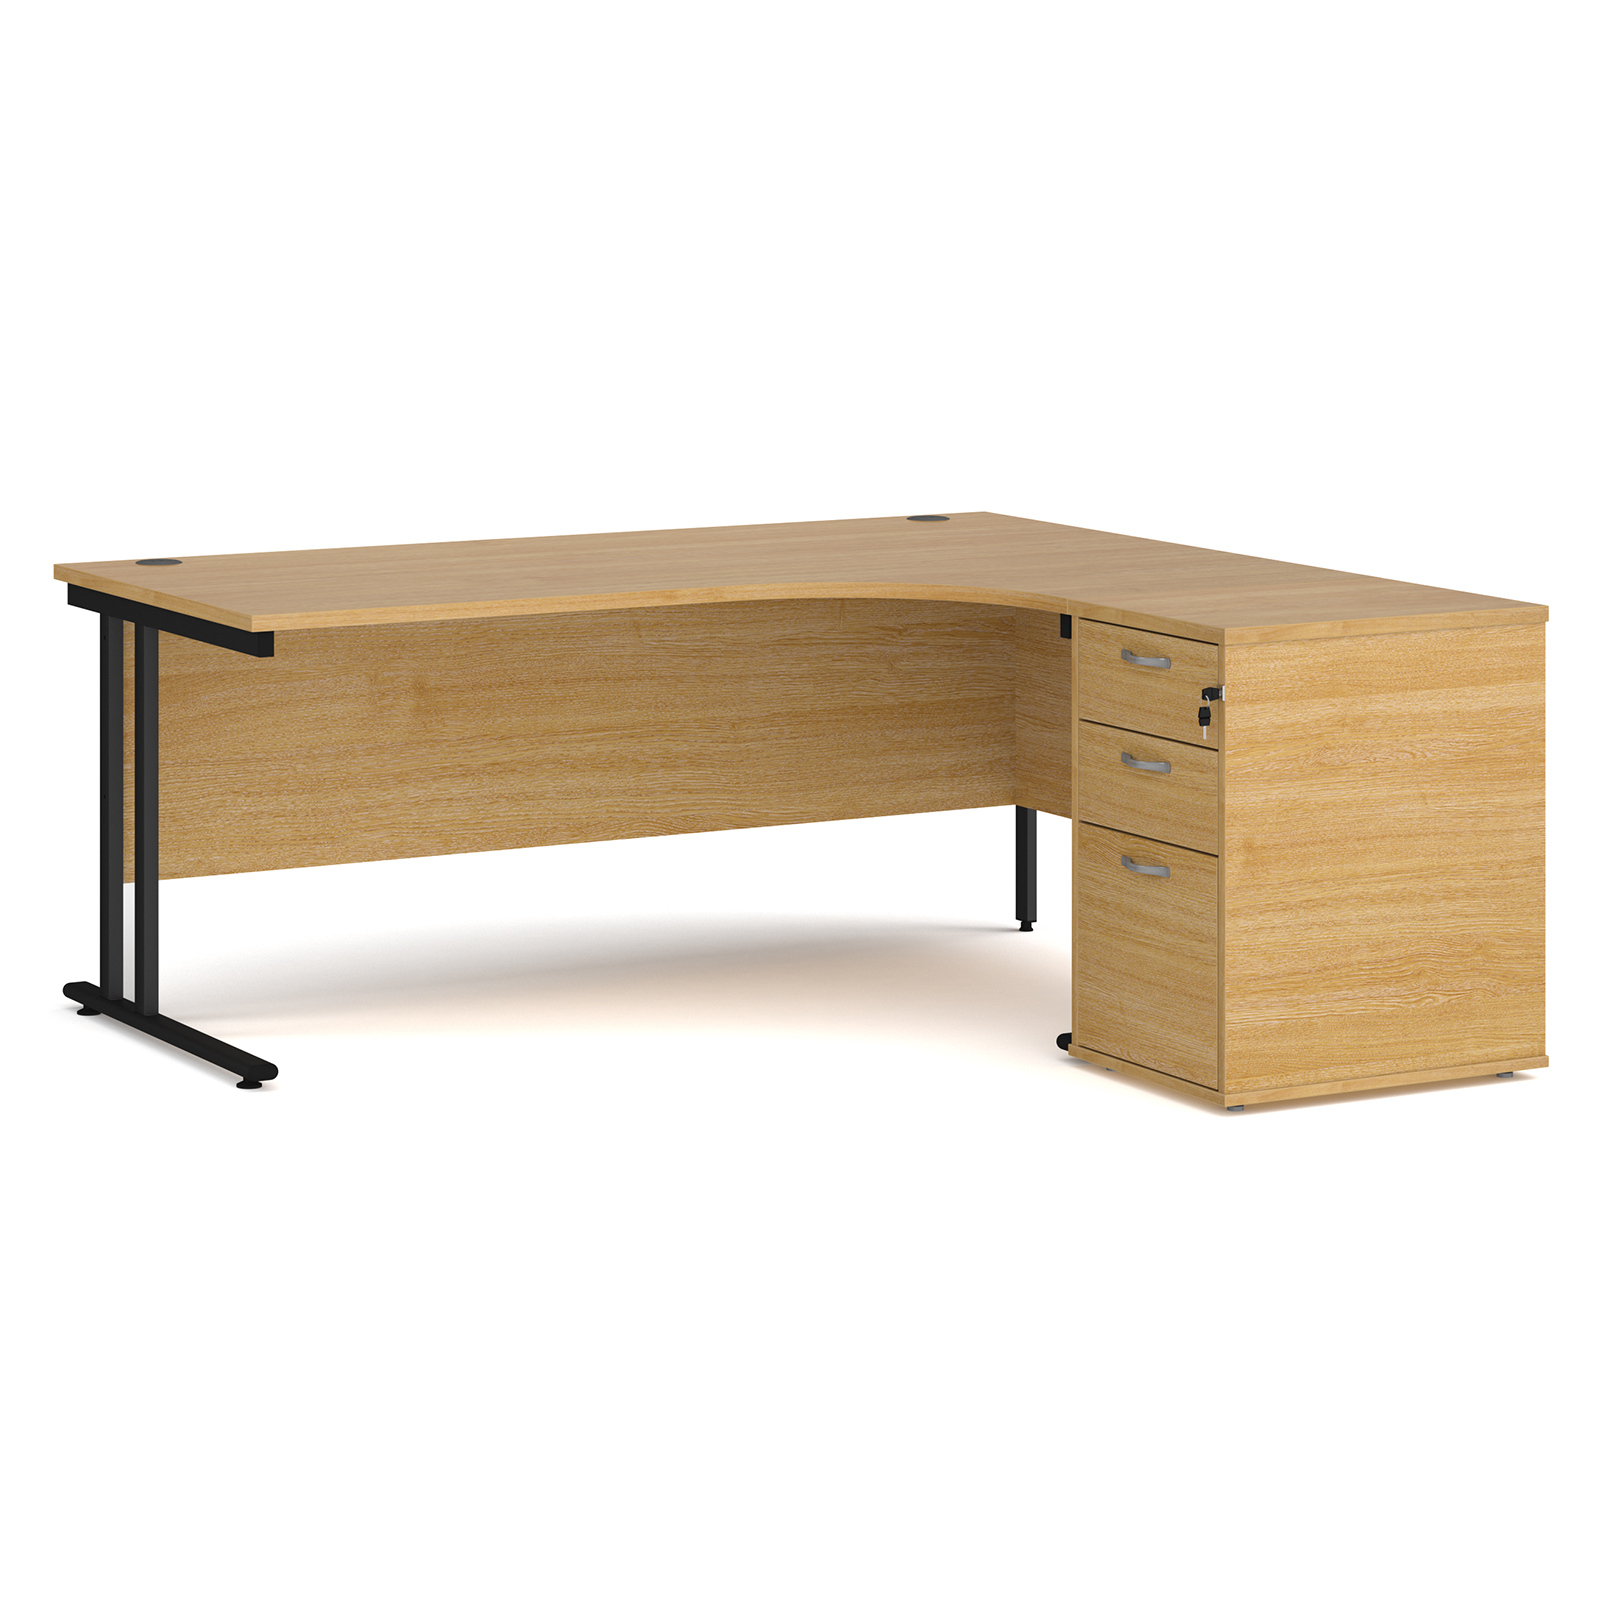 Right Handed Maestro 25 right hand ergonomic desk 1800mm with black cantilever frame and desk high pedestal - oak